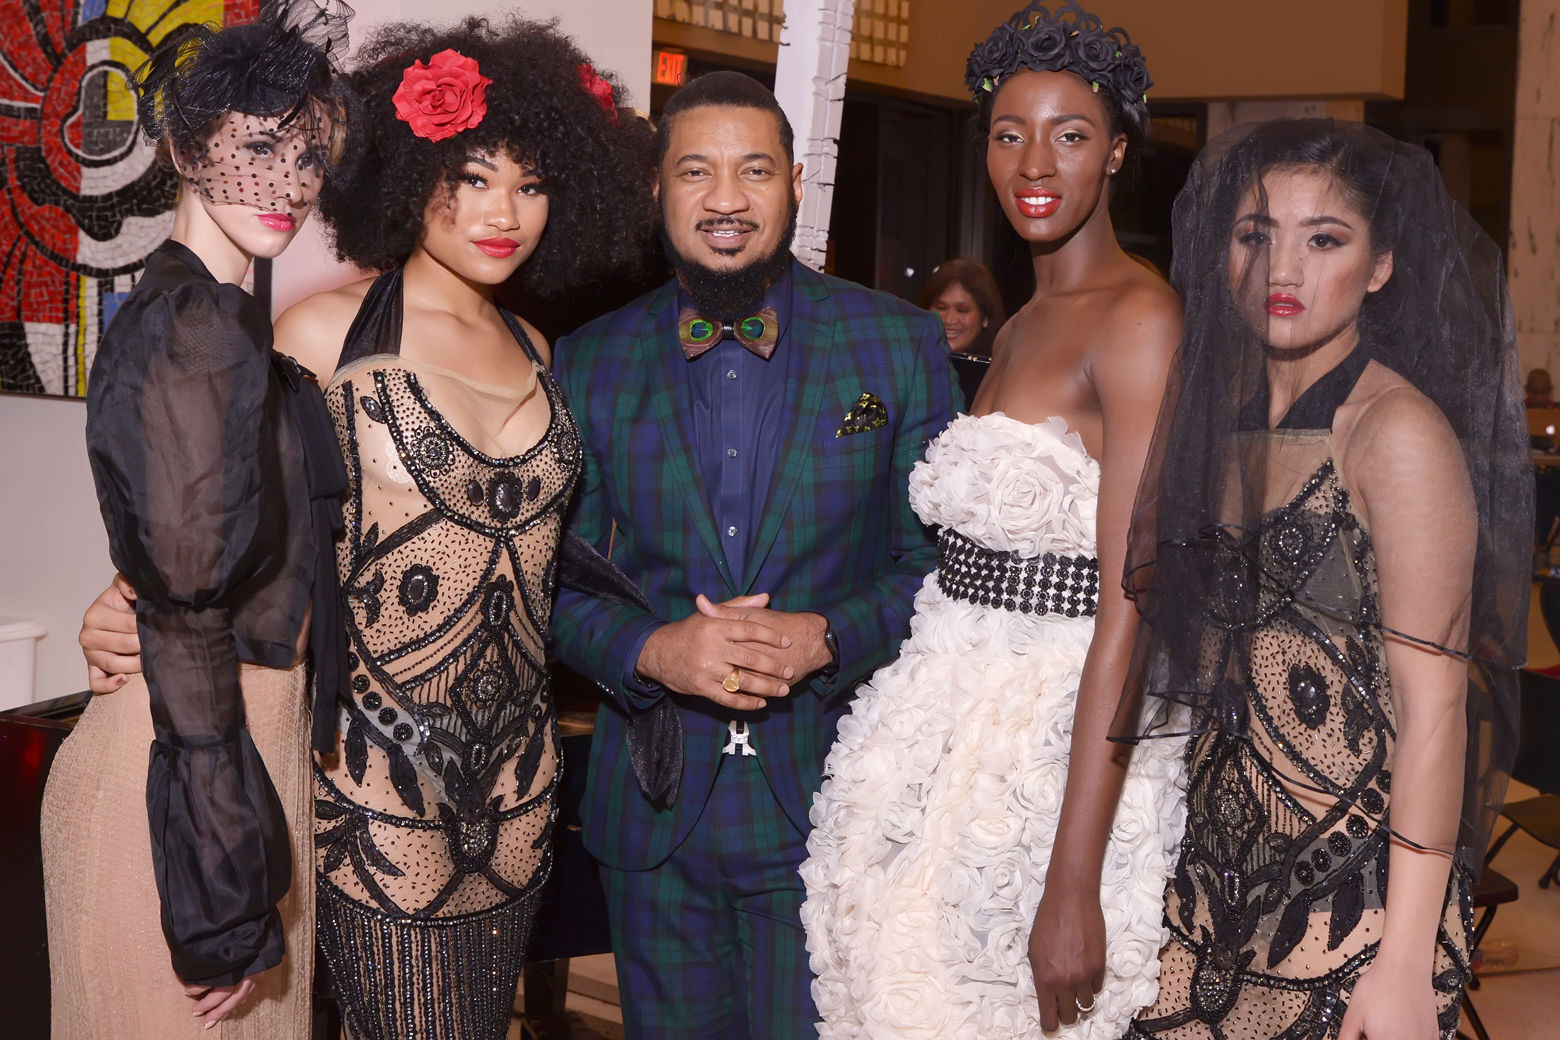 Models wearing dresses by Washington, DC-based designer Ean Williams pose with the designer following the runway show at DC Fashion Week's 2018 International Couture Collections at the Embassy of France